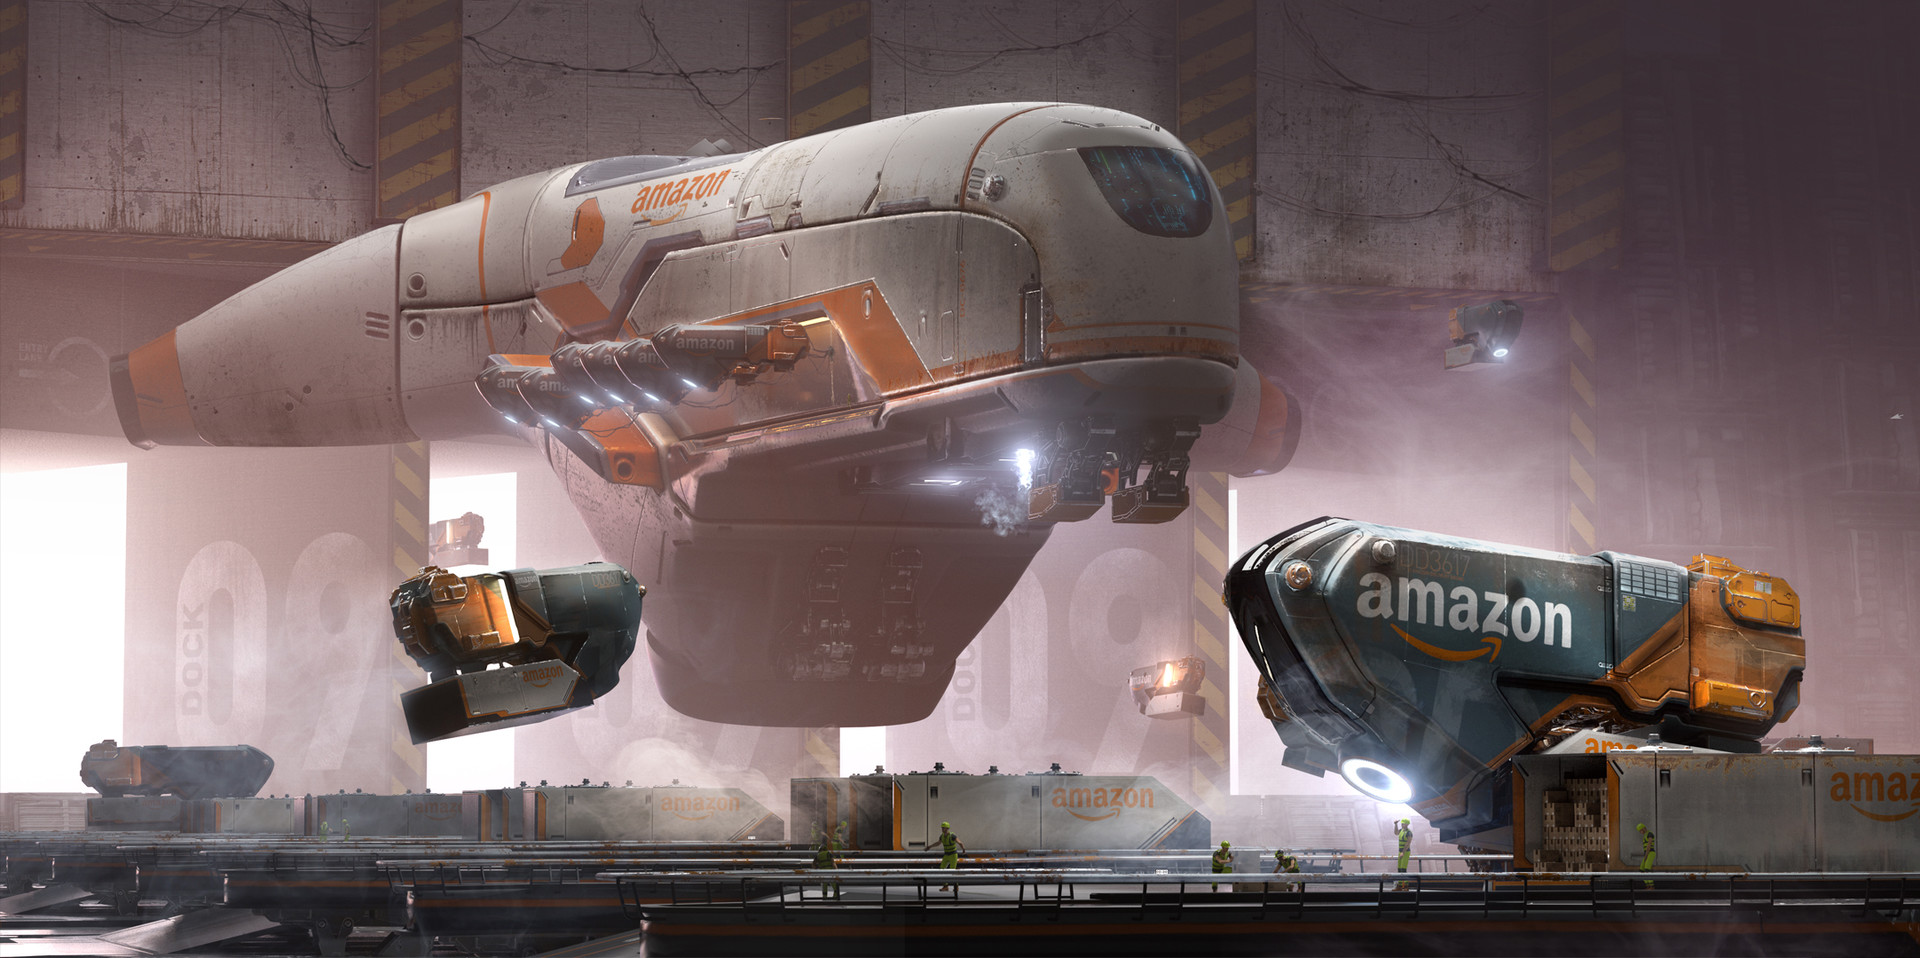 Futuristic Amazon Concept Art by Daniel Balzer